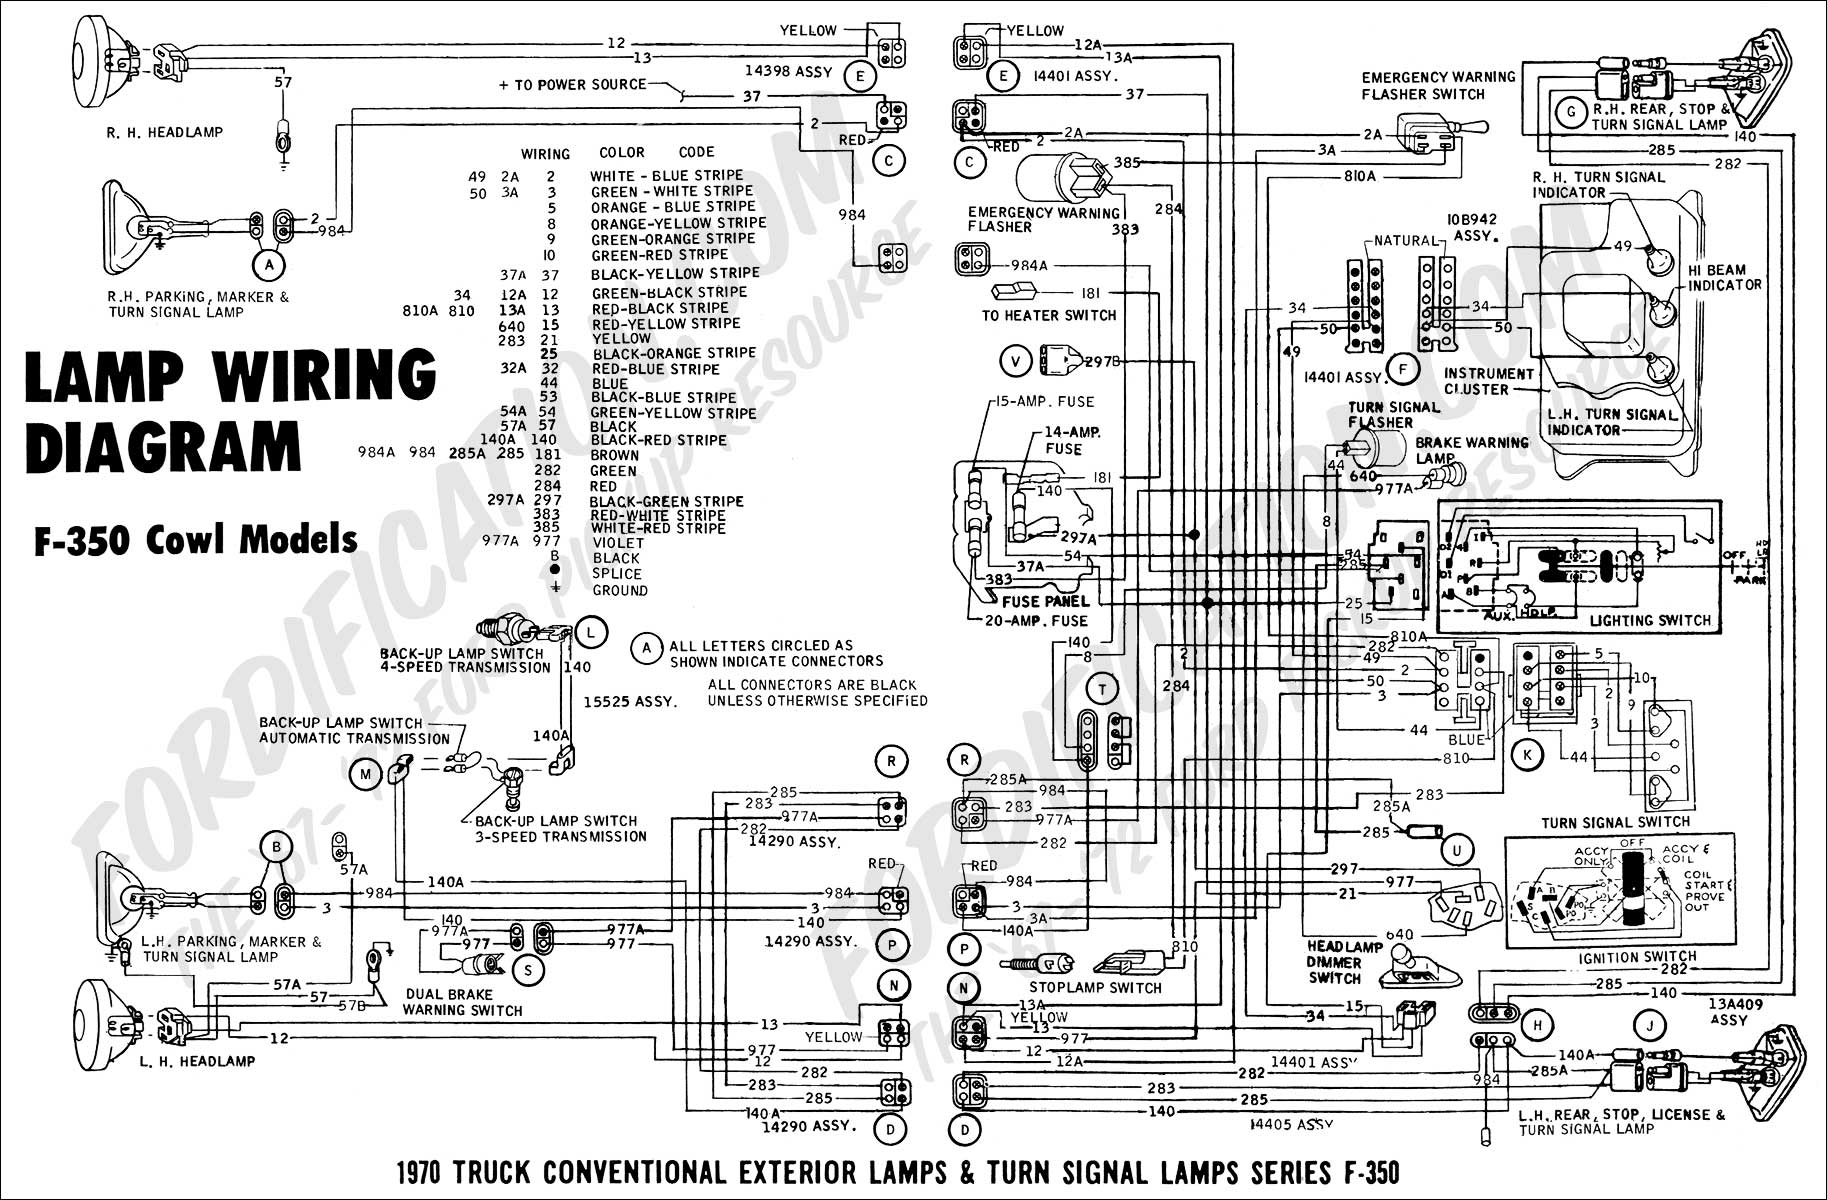 2002 f150 headlight wiring diagram fios phone 1999 ford f250 dome light switch autos post